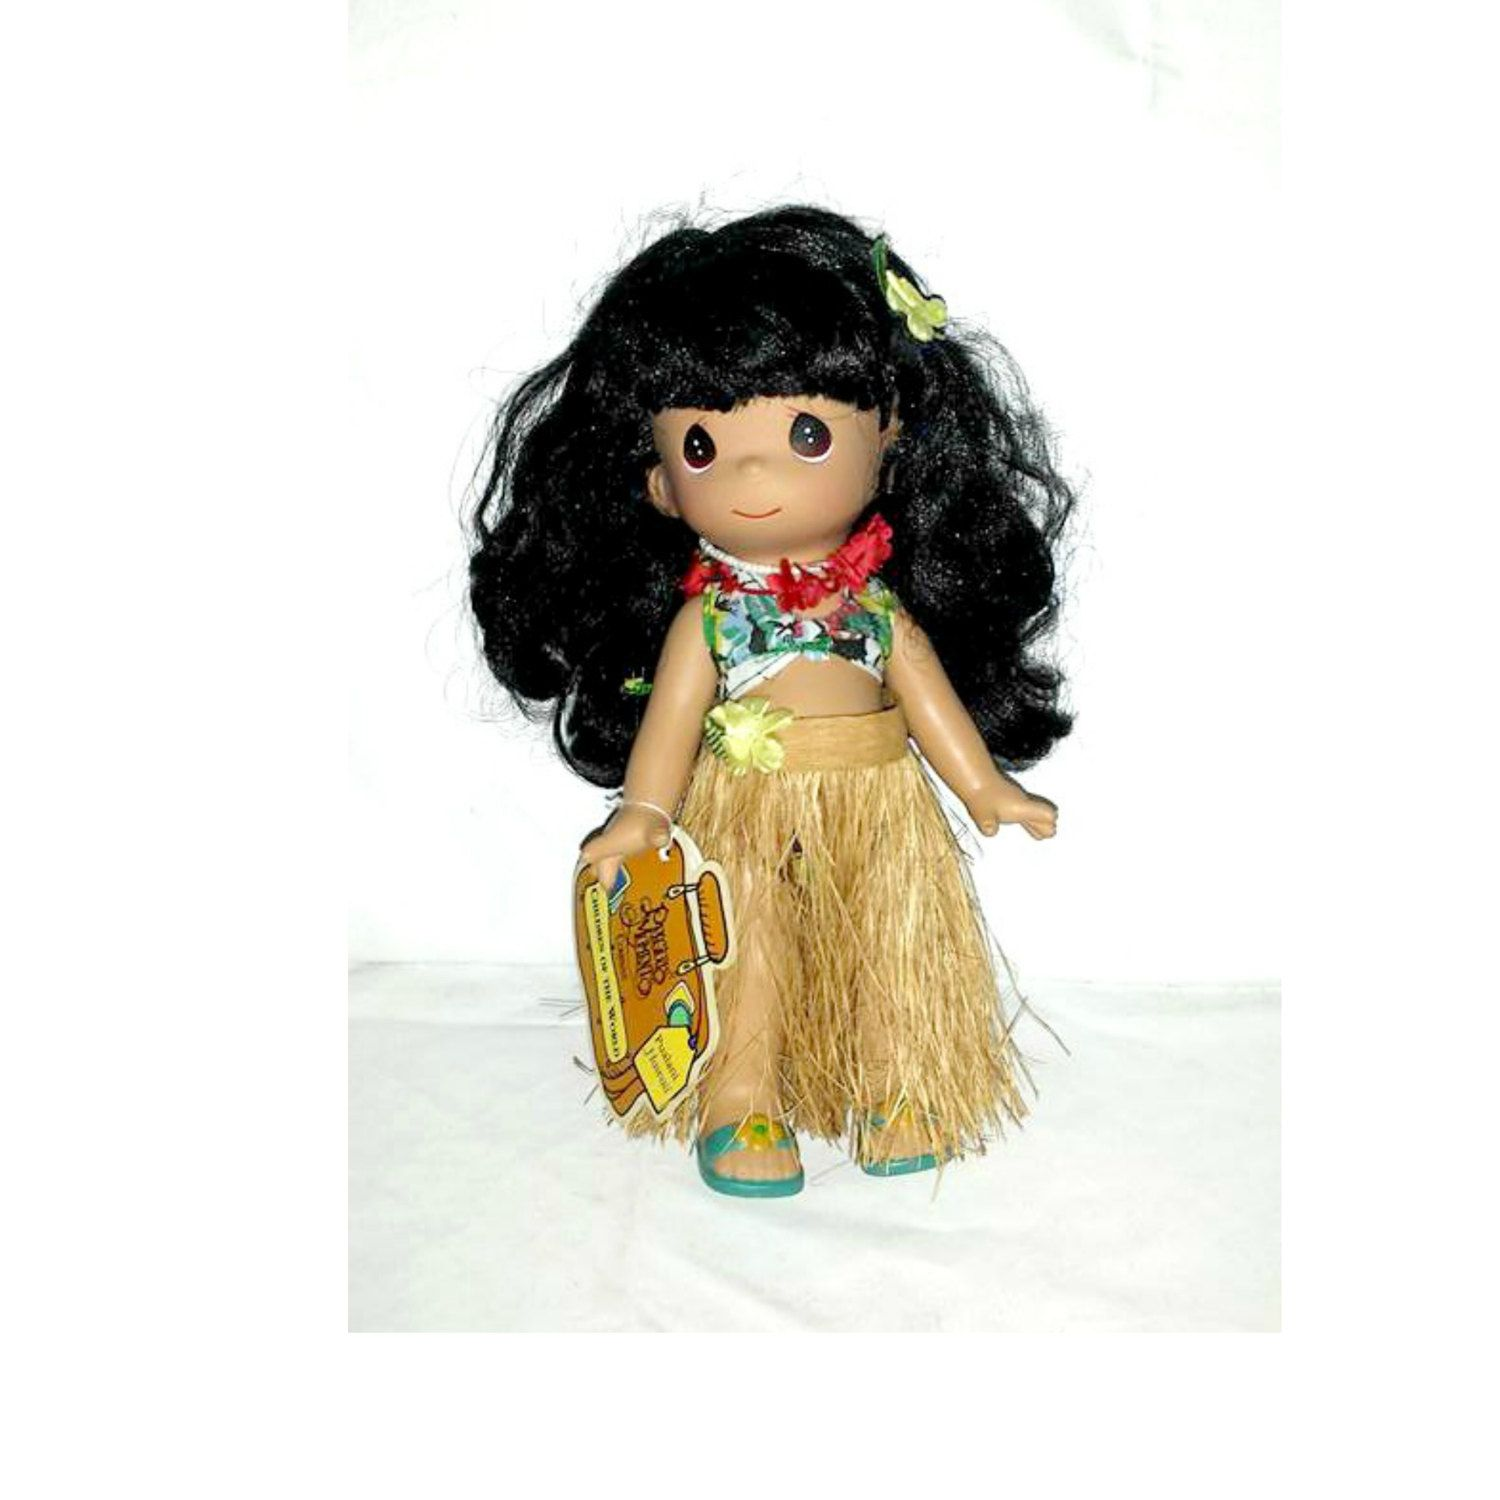 Precious Moments Hawaii Doll,Vintage Hula Doll,Precious Moments,Children of the World,Hawaii Doll,Pualani,Vintage Doll,Hula,1990s by JunkYardBlonde on Etsy